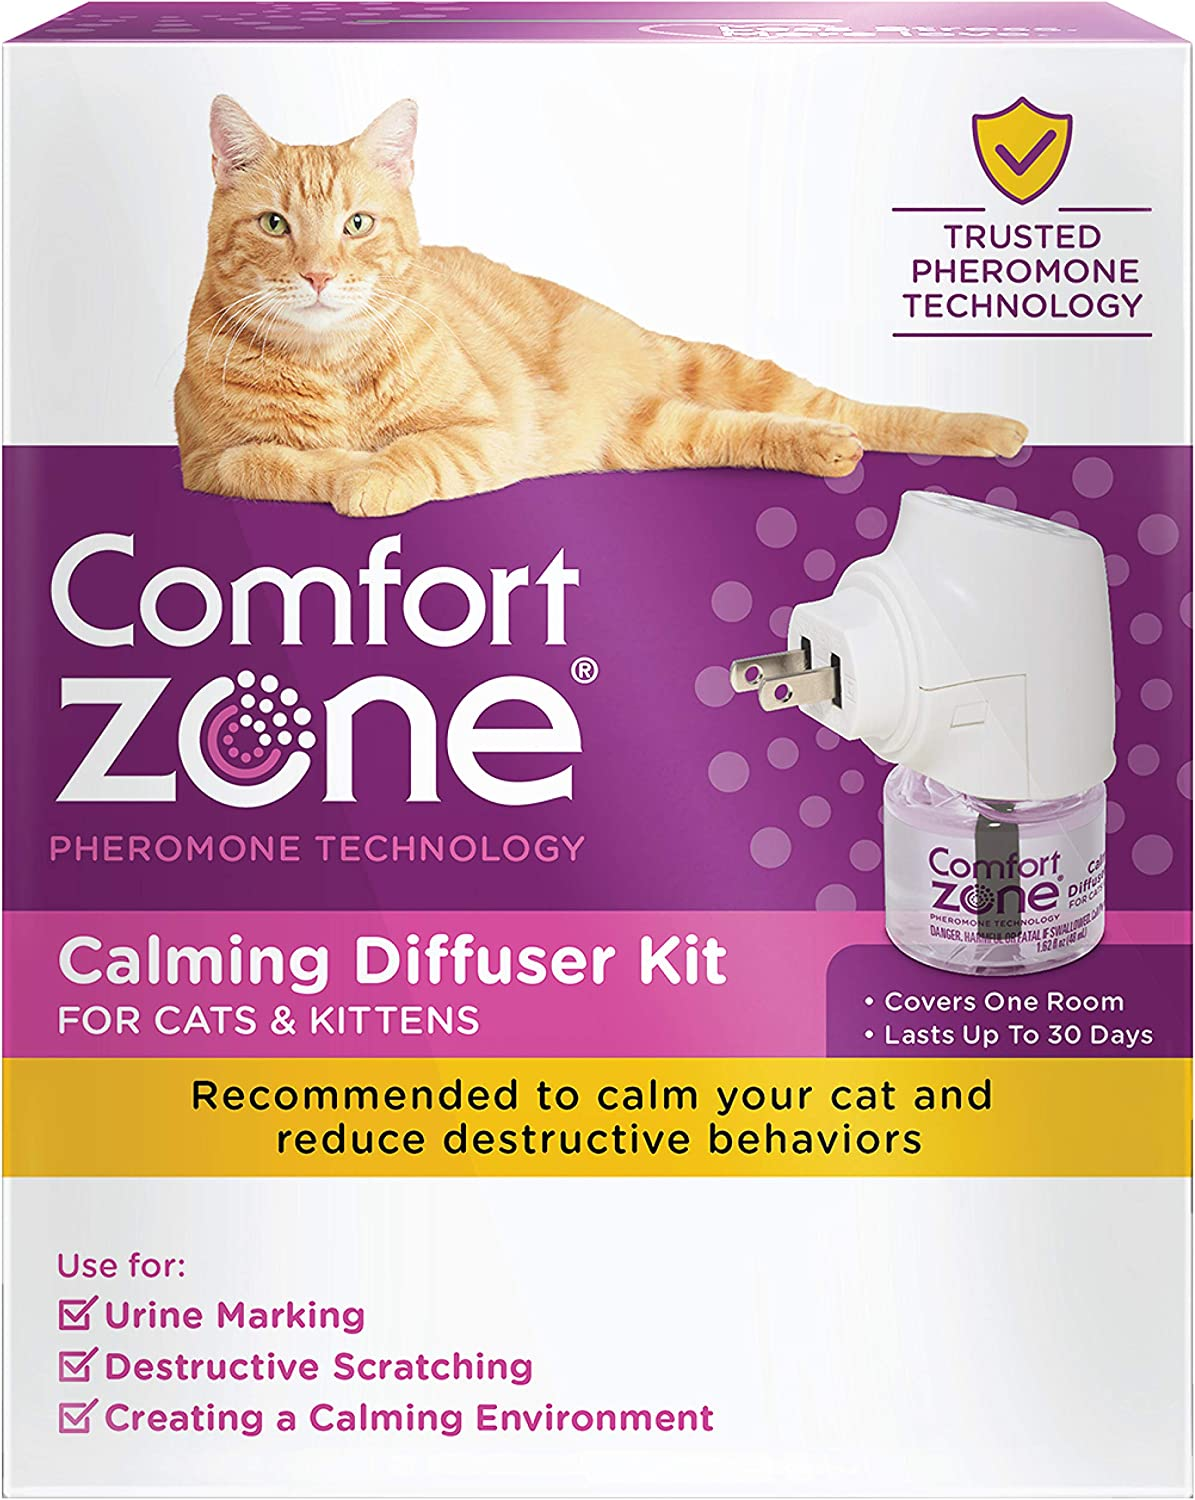 Comfort Zone 2X More Pheromones Formula Calming Diffuser Kit for Cat Calming | Multi Cat & Calming Formulas | Single Diffuser Kit, 1 Diffuser, 1 Refill